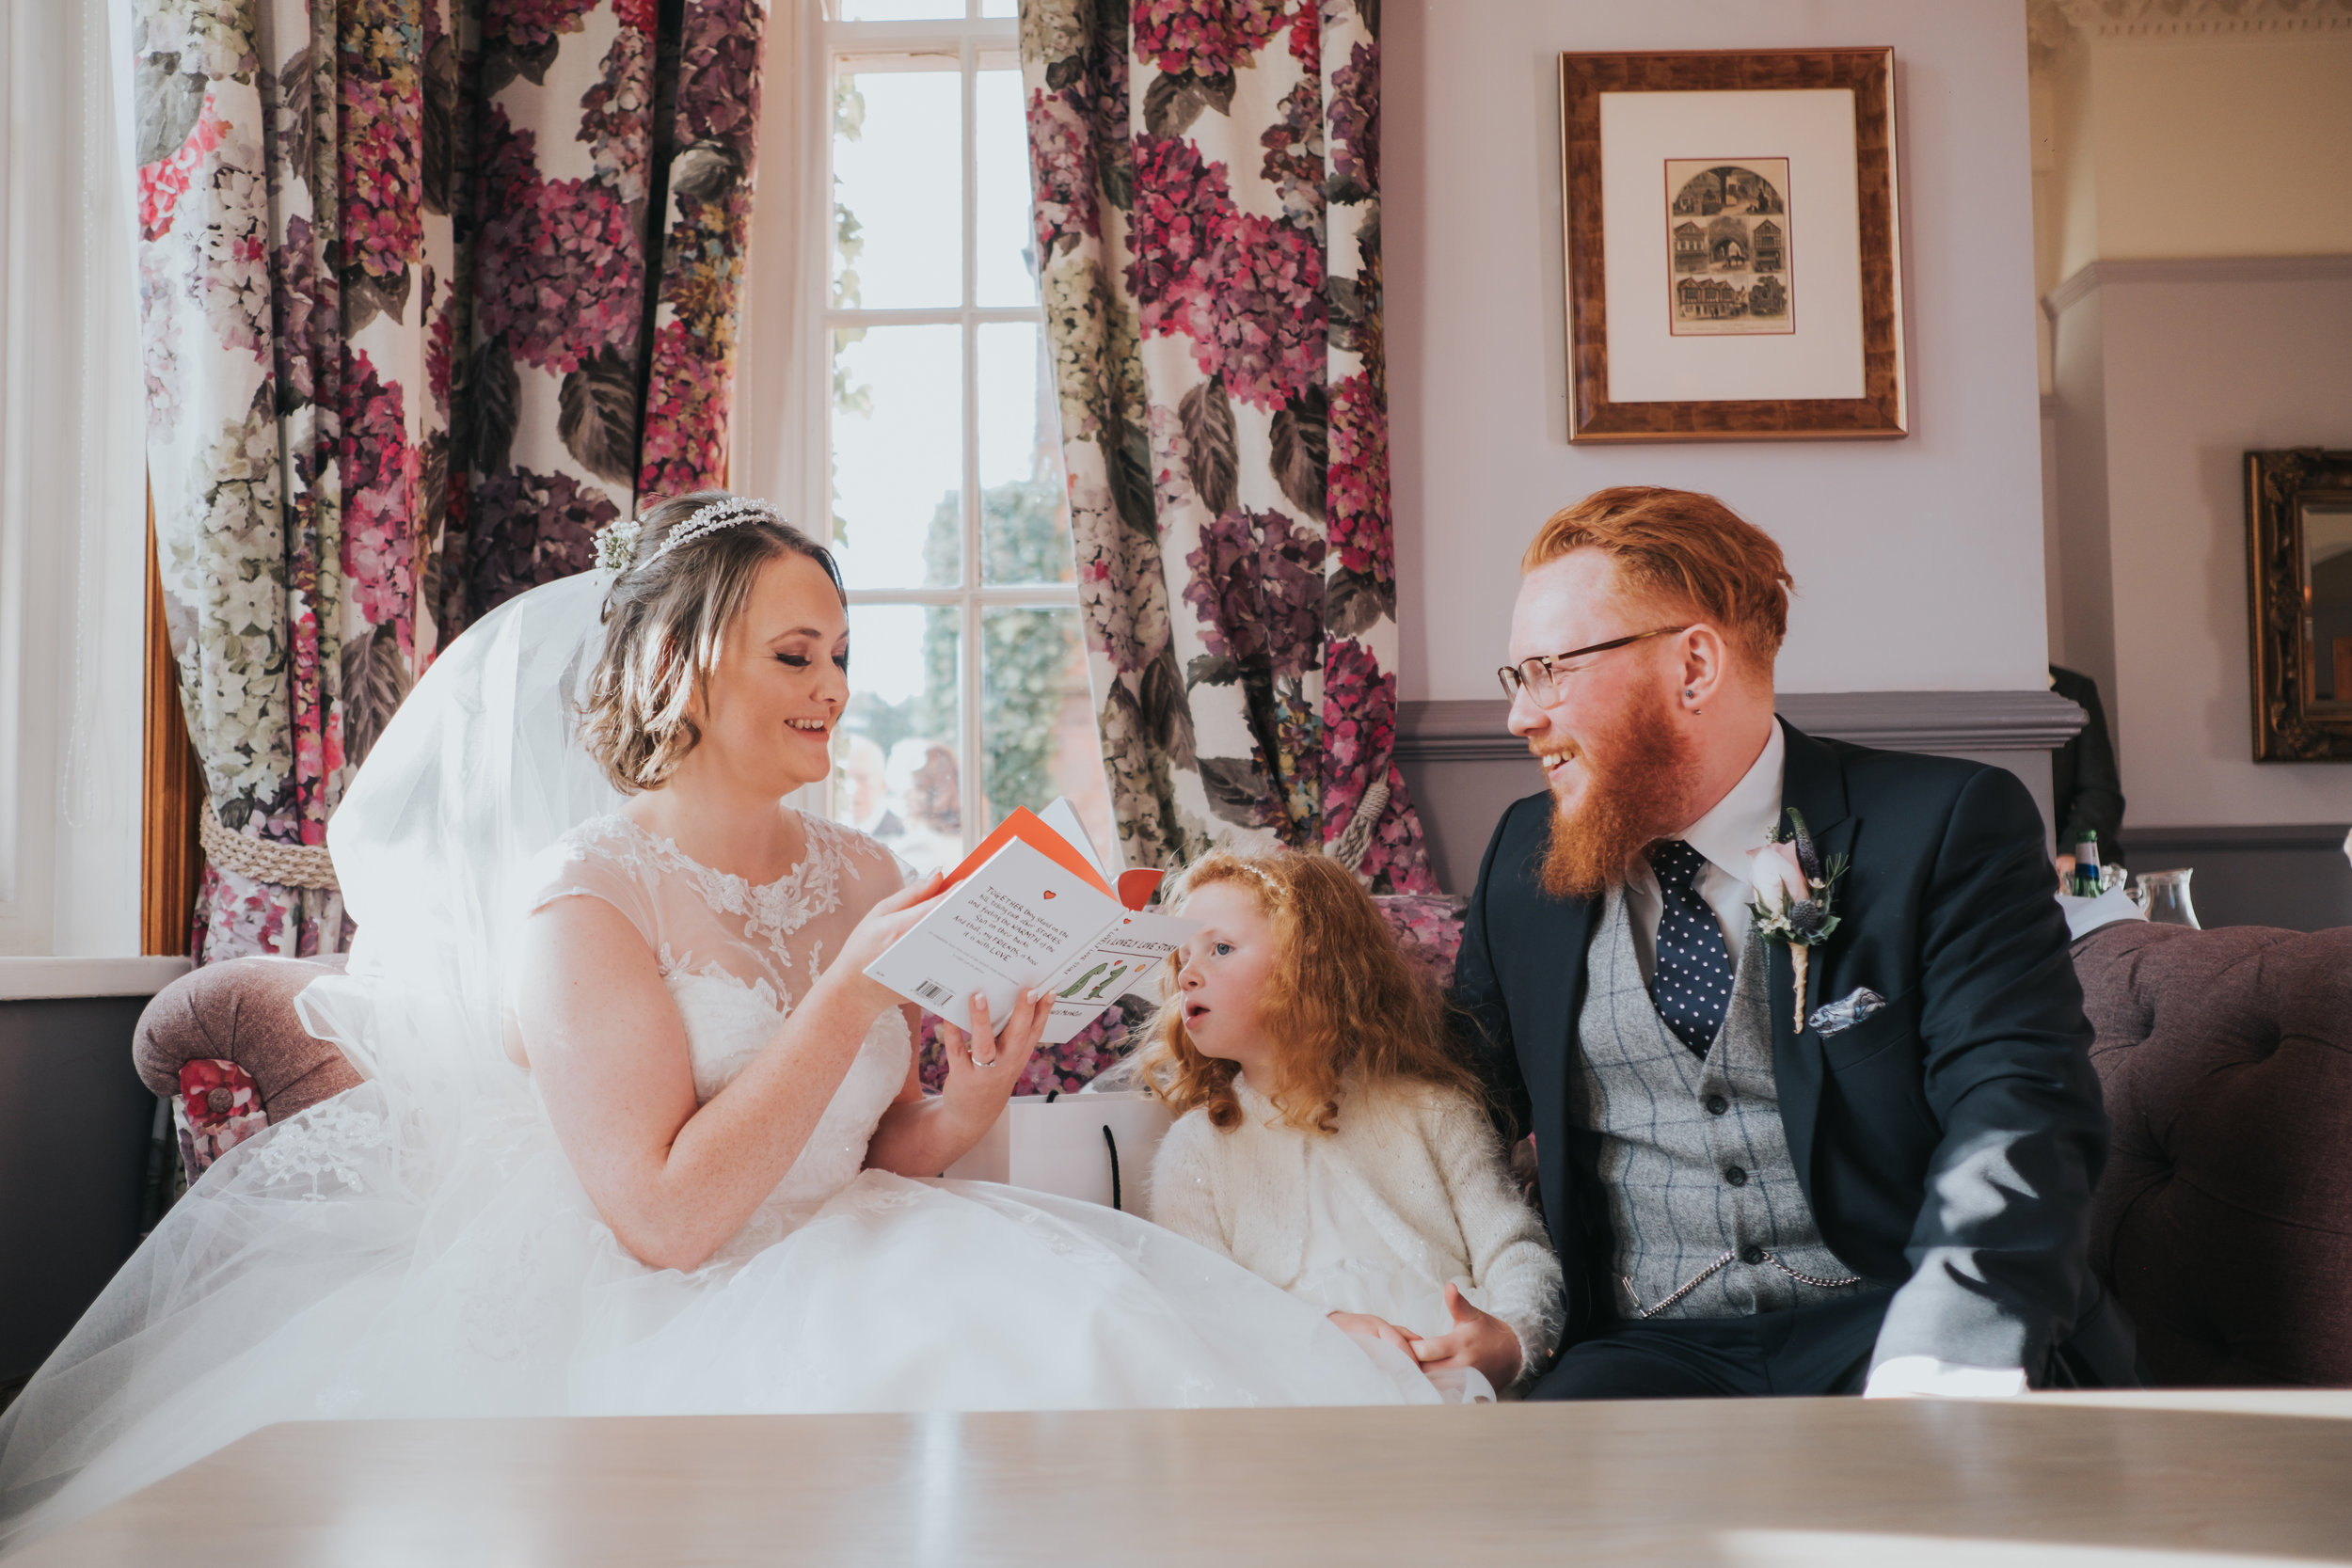 Vicky and Lee Wedding (252 of 590)-nunsmere hall wedding photographer in cheshire documentry wedding photography north west england.jpg